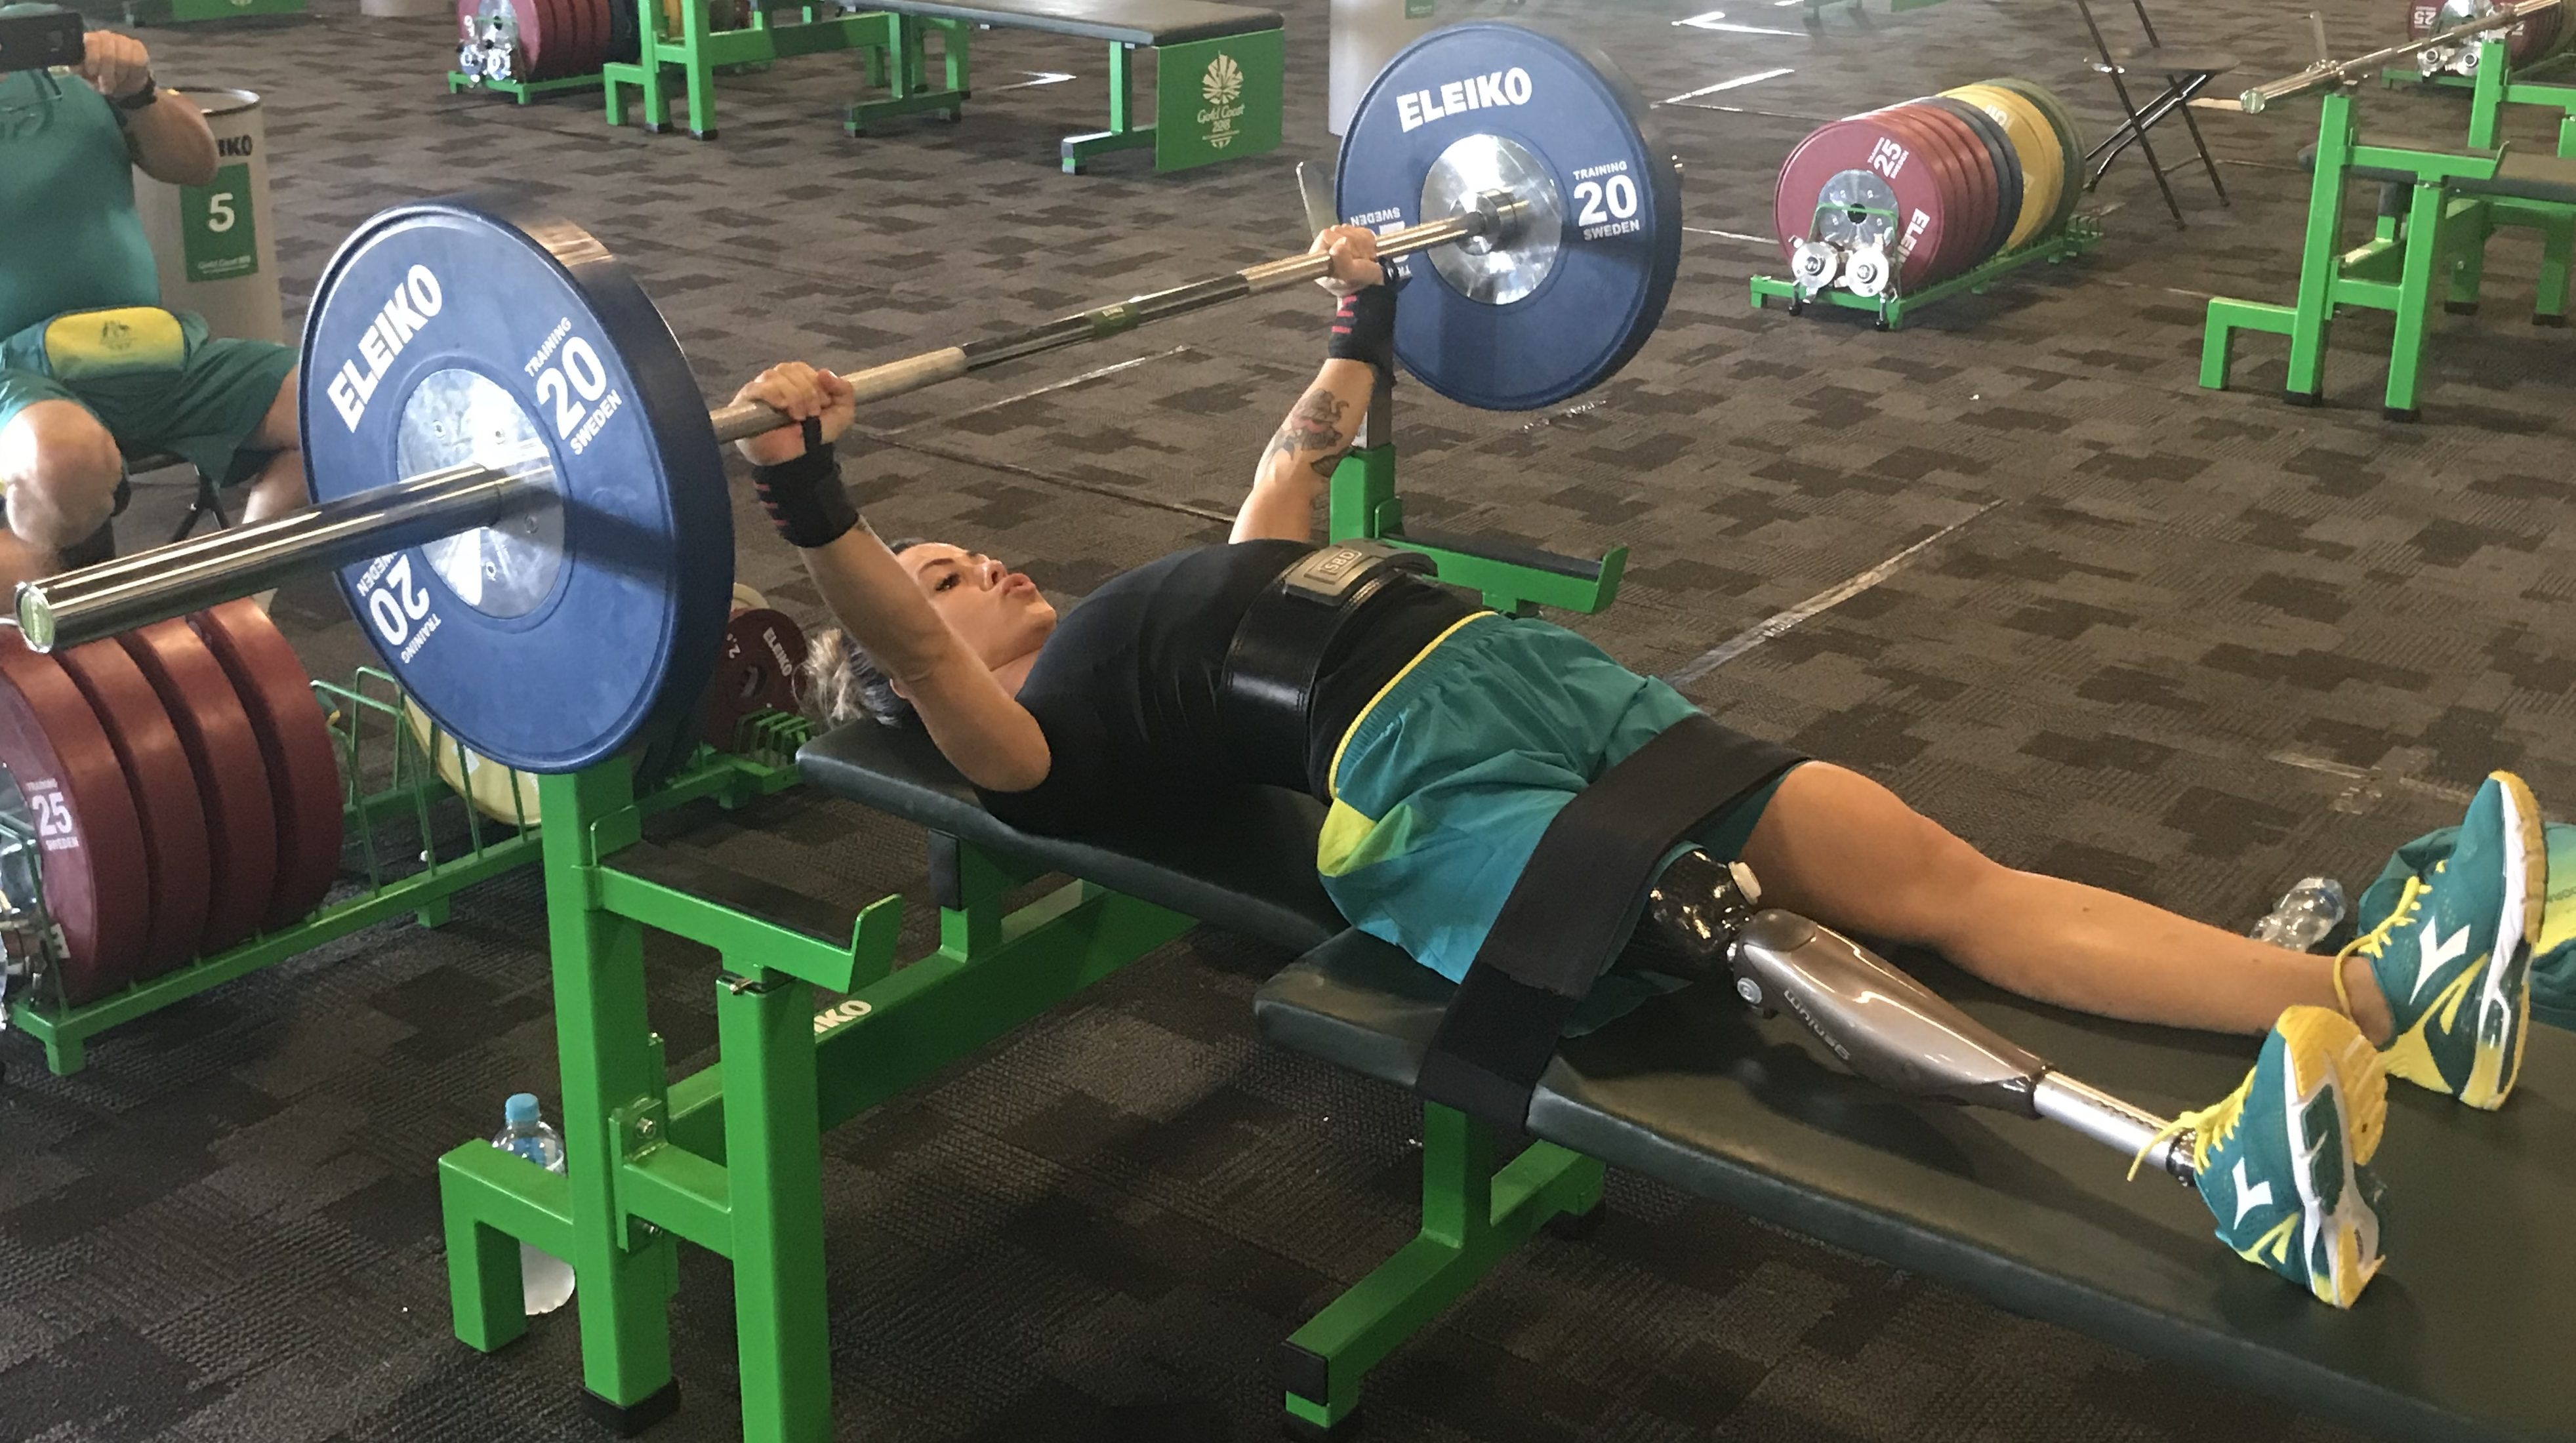 Comeback kid Cartwright aims for Para-powerlifting glory